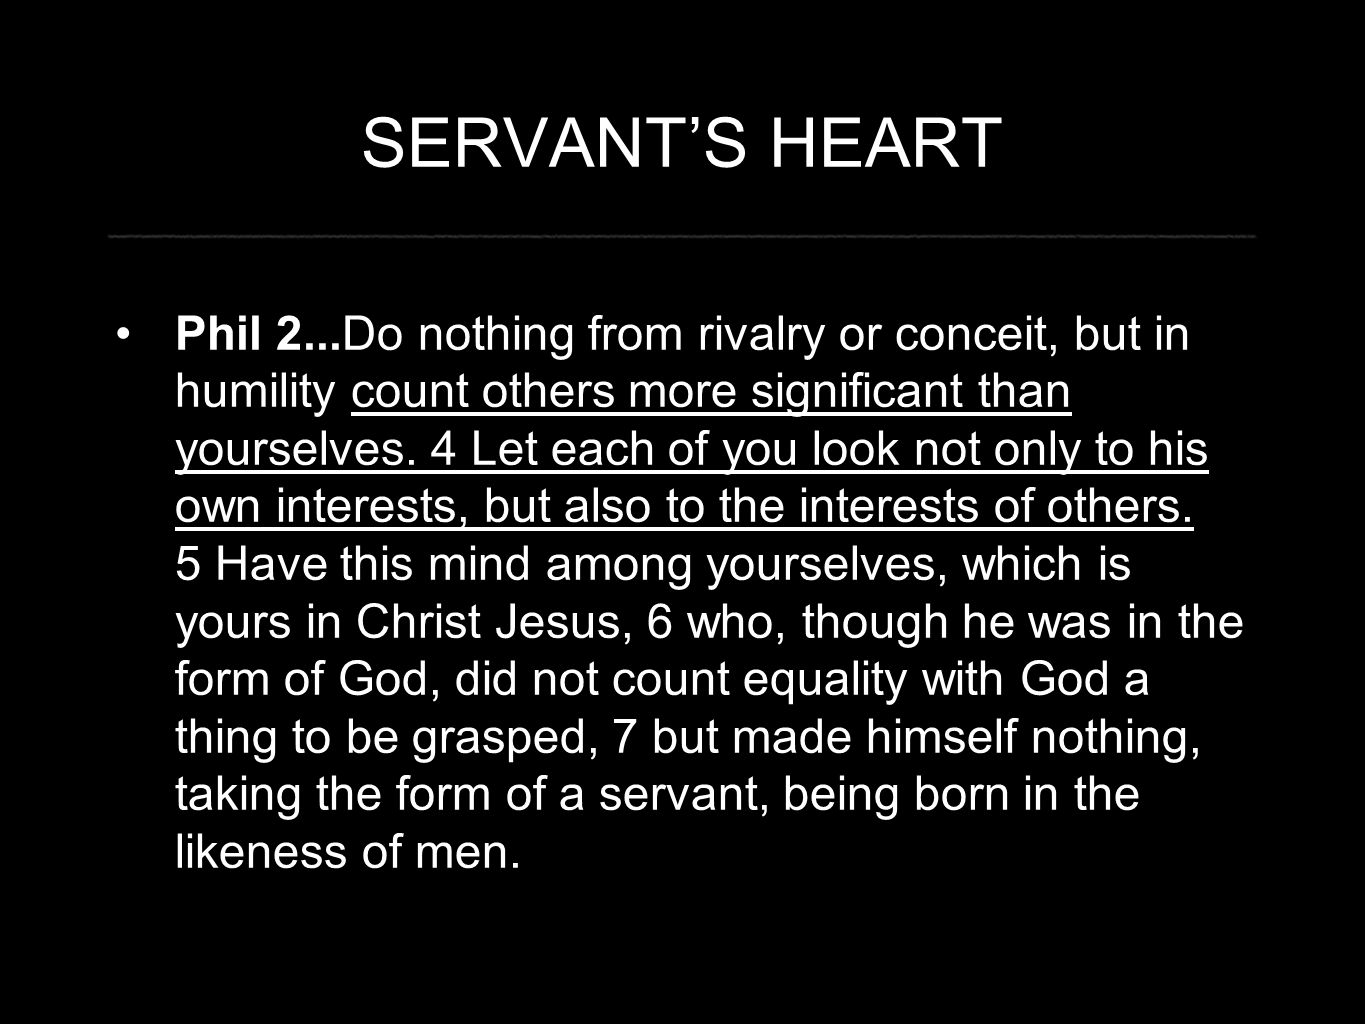 SERVANT'S HEART Phil 2...Do nothing from rivalry or conceit, but in humility count others more significant than yourselves. 4 Let each of you look not